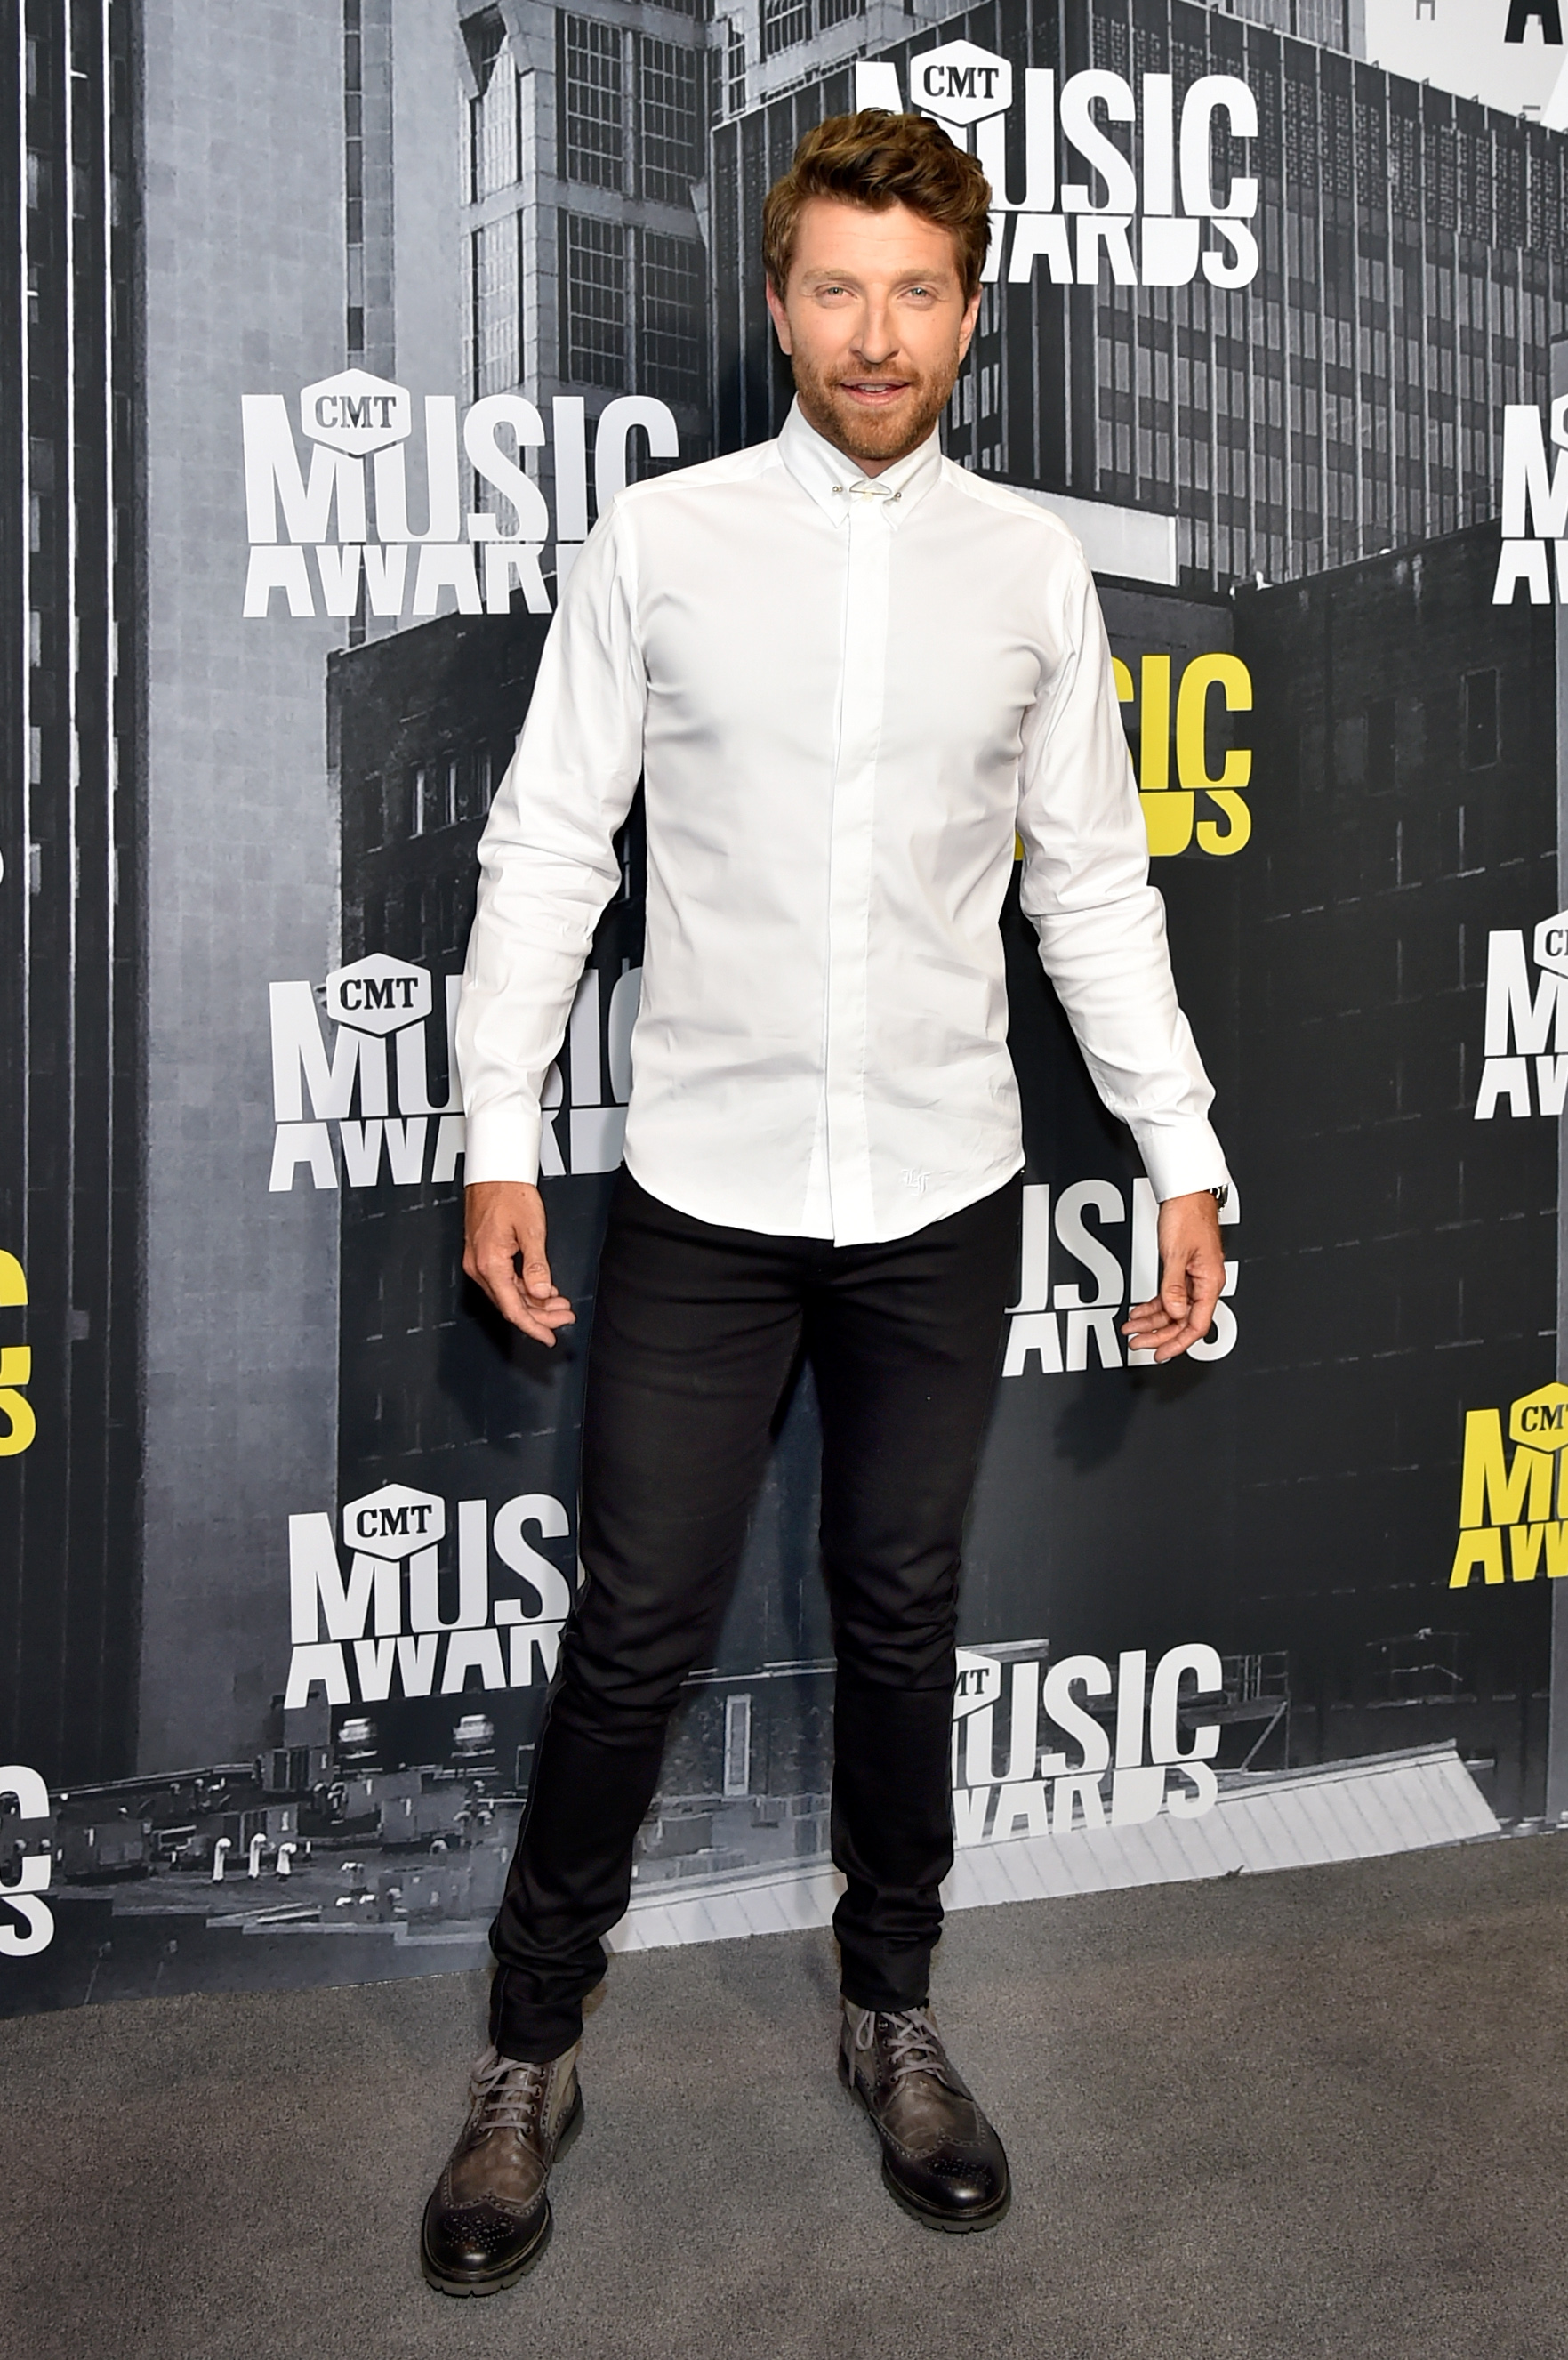 NASHVILLE, TN - JUNE 07: Singer-songwriter Brett Eldredge attends the 2017 CMT Music Awards at the Music City Center on June 7, 2017 in Nashville, Tennessee. (Photo by Mike Coppola/WireImage)